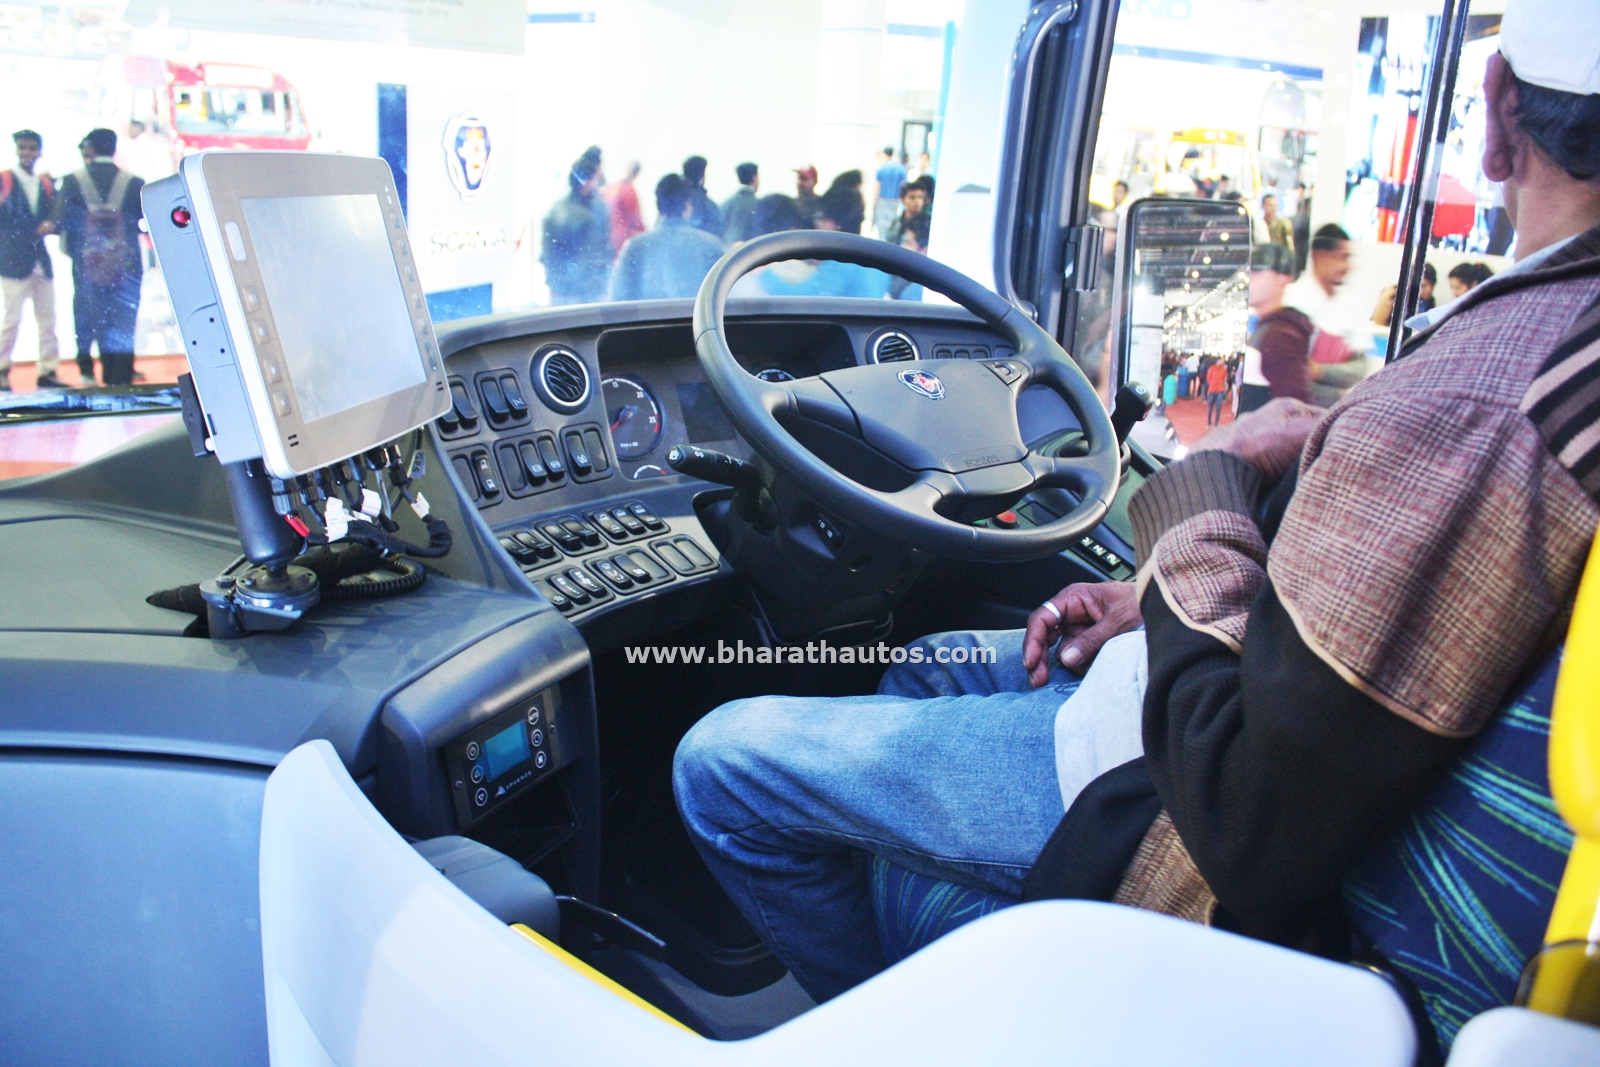 Scania R580 Puller G310 Truck And Citywide Bus From 2016